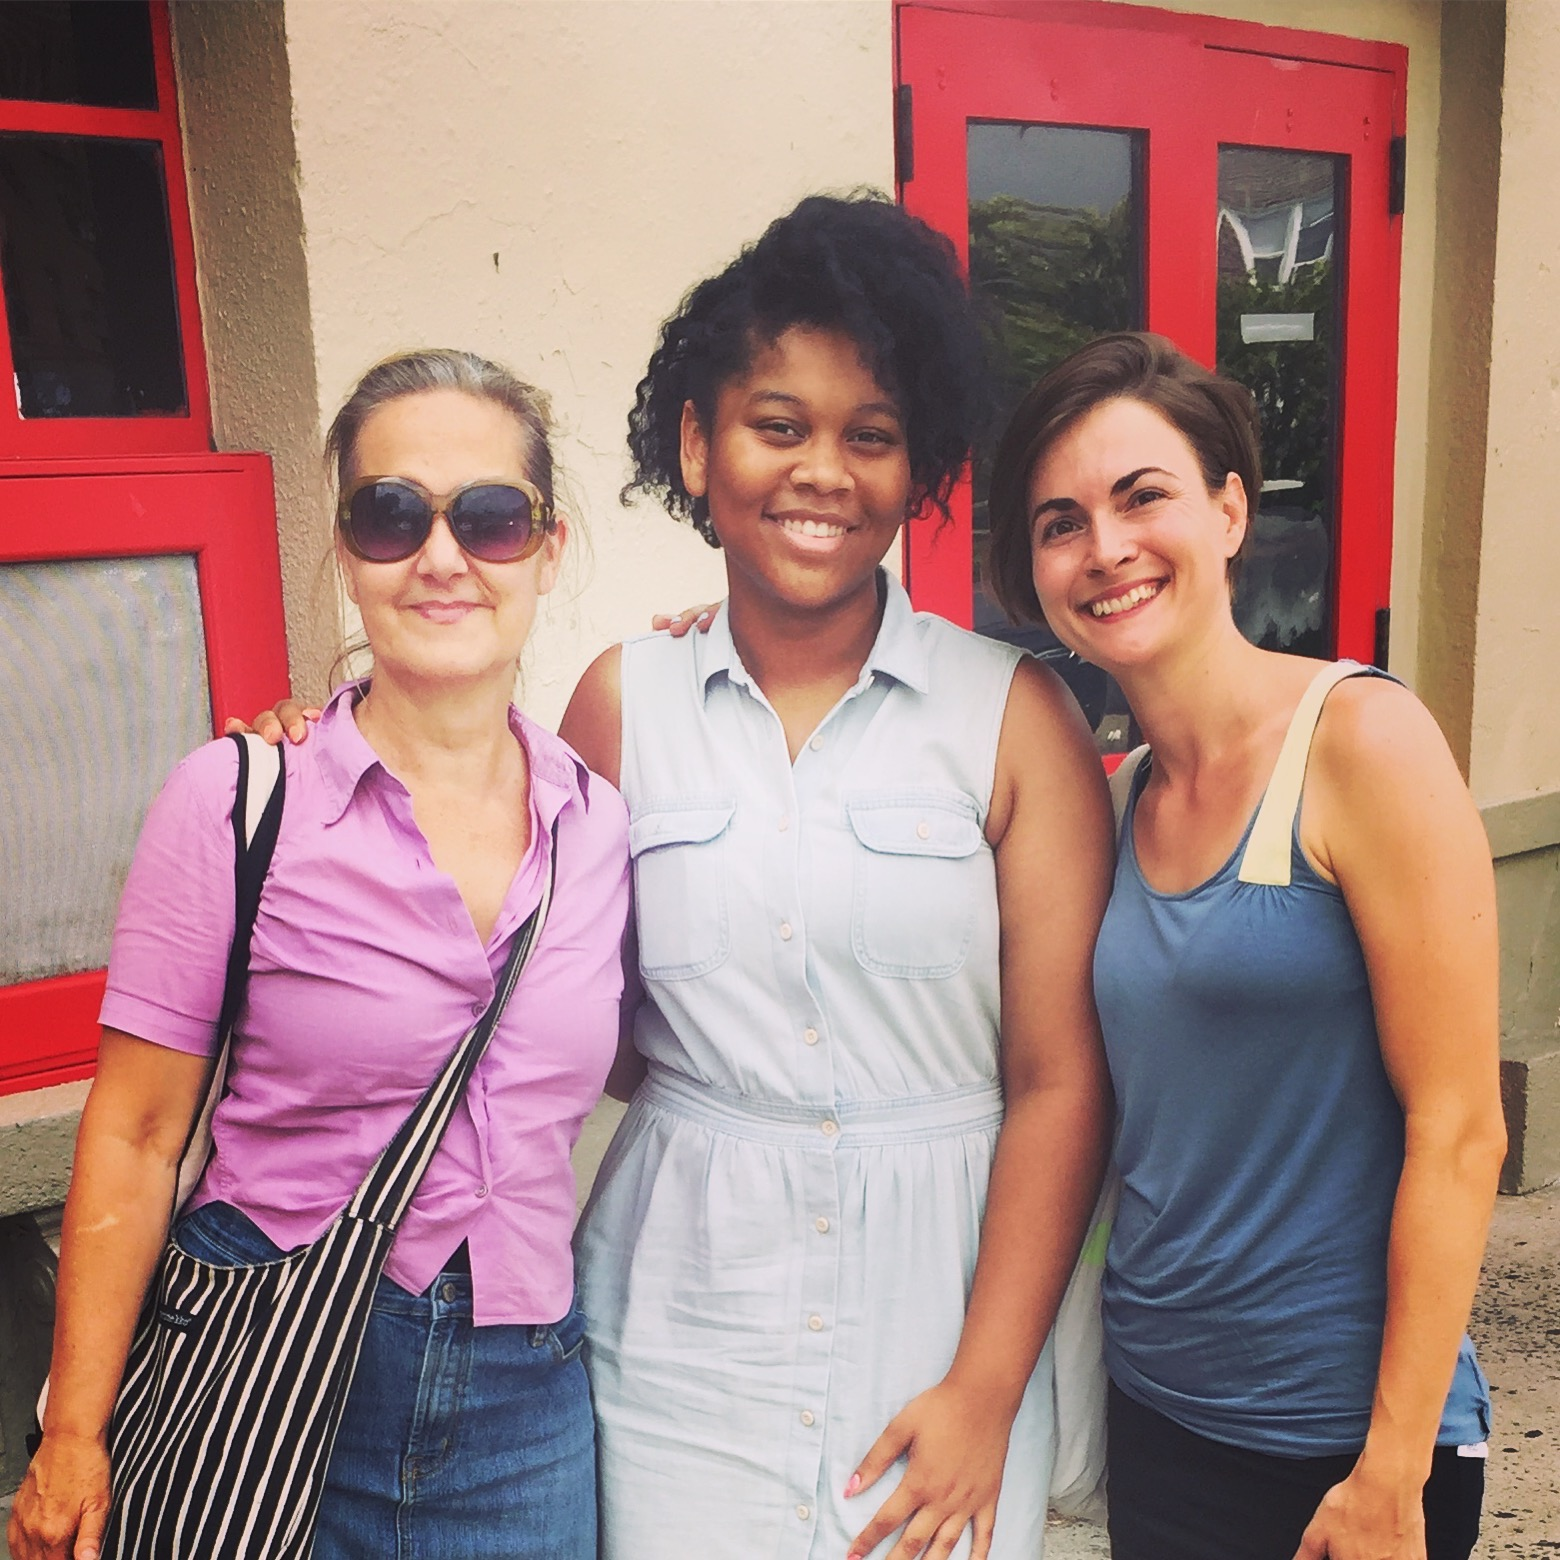 With the incredible Cocoon team -- Jewels Marshall and Mirana Zuger -- after a great meeting with Dalaeja Foreman at BCA.